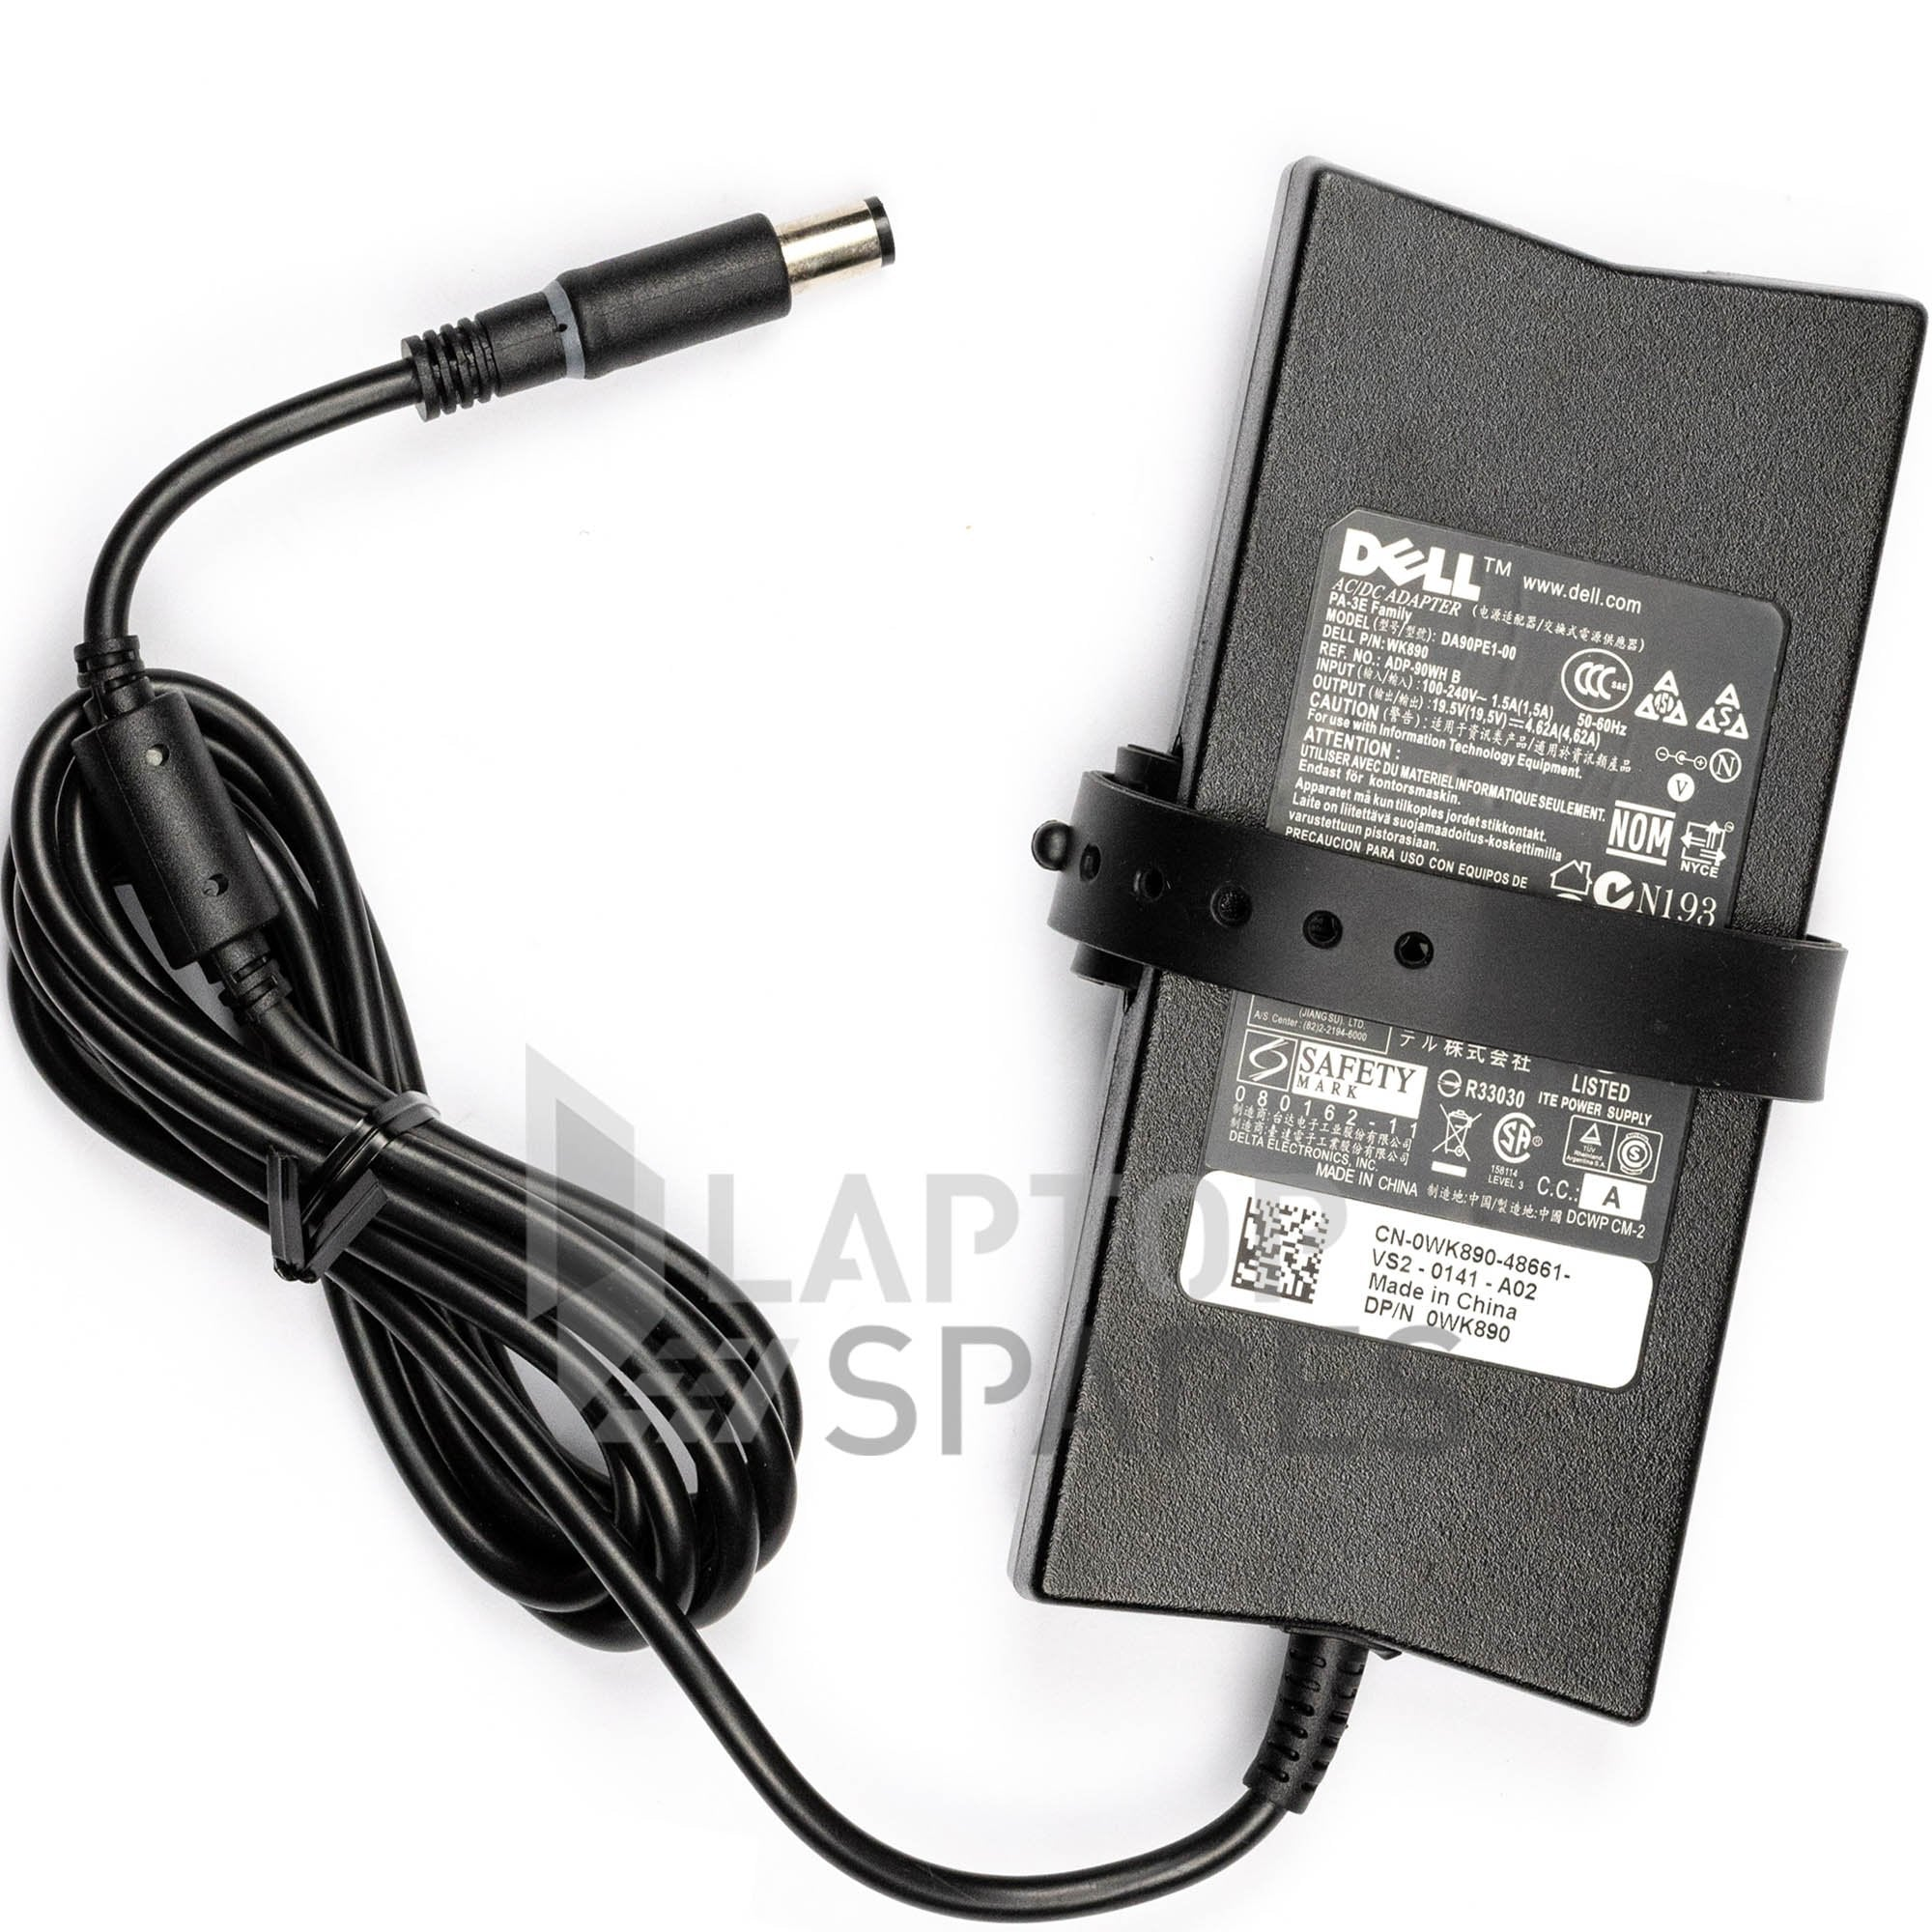 Dell Inspiron 1501 1520 1521 Laptop Slim AC Adapter Charger